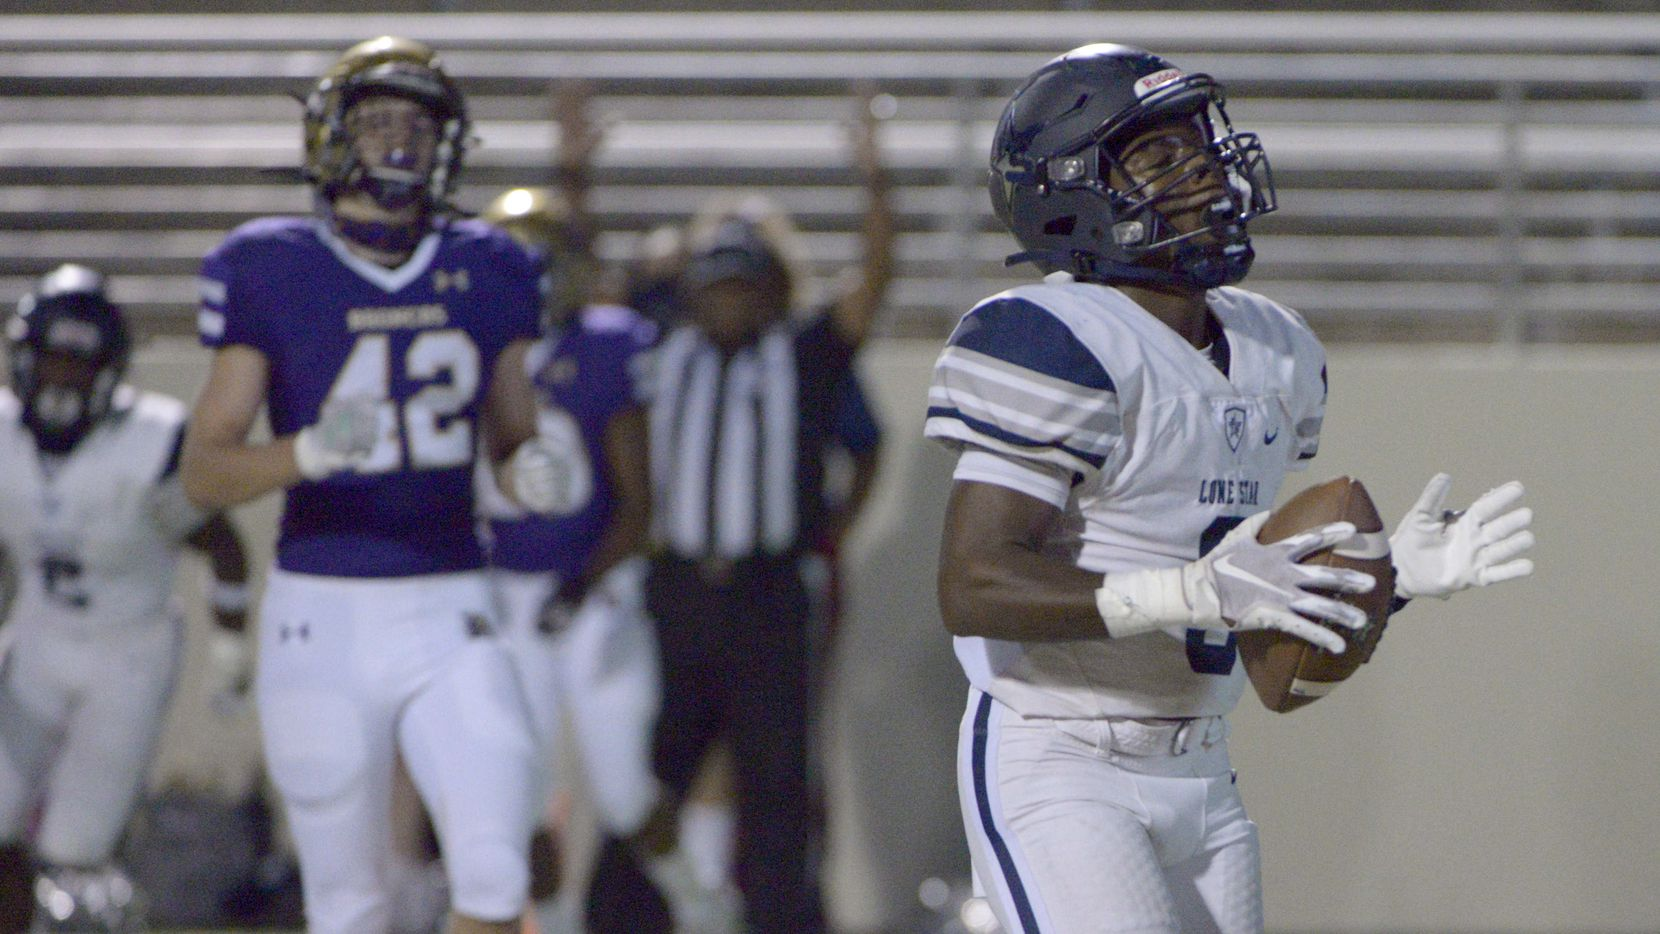 Lone Star's Tolu Sokoya (3) reacts after his touchdown catch in the first quarter of a high school football game between Frisco Lone Star and Denton, Thursday, Nov. 5, 2020, in Denton, Texas.